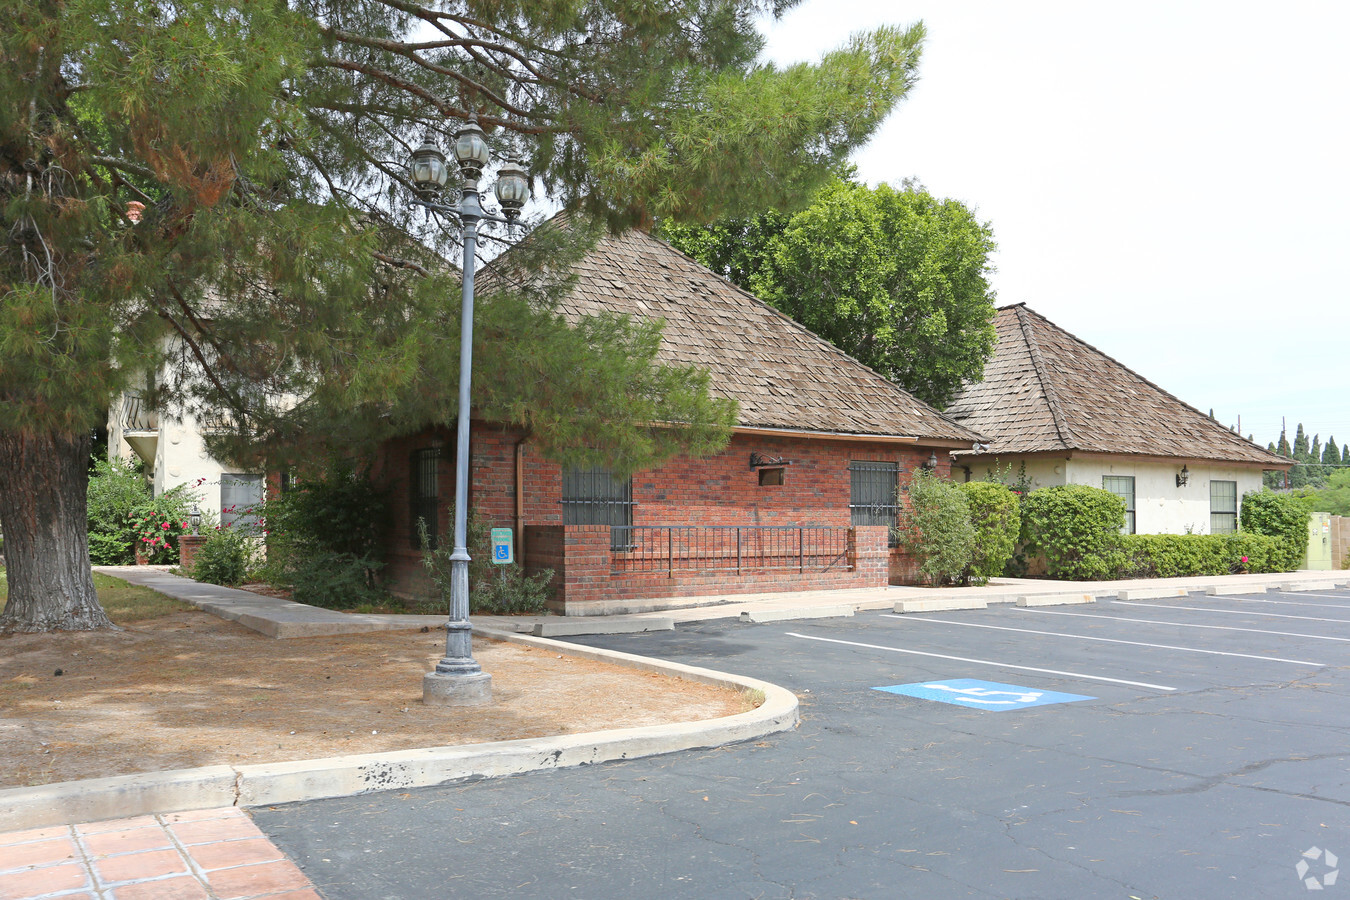 40 W Brown Rd, Mesa AZ 85201 Office Building